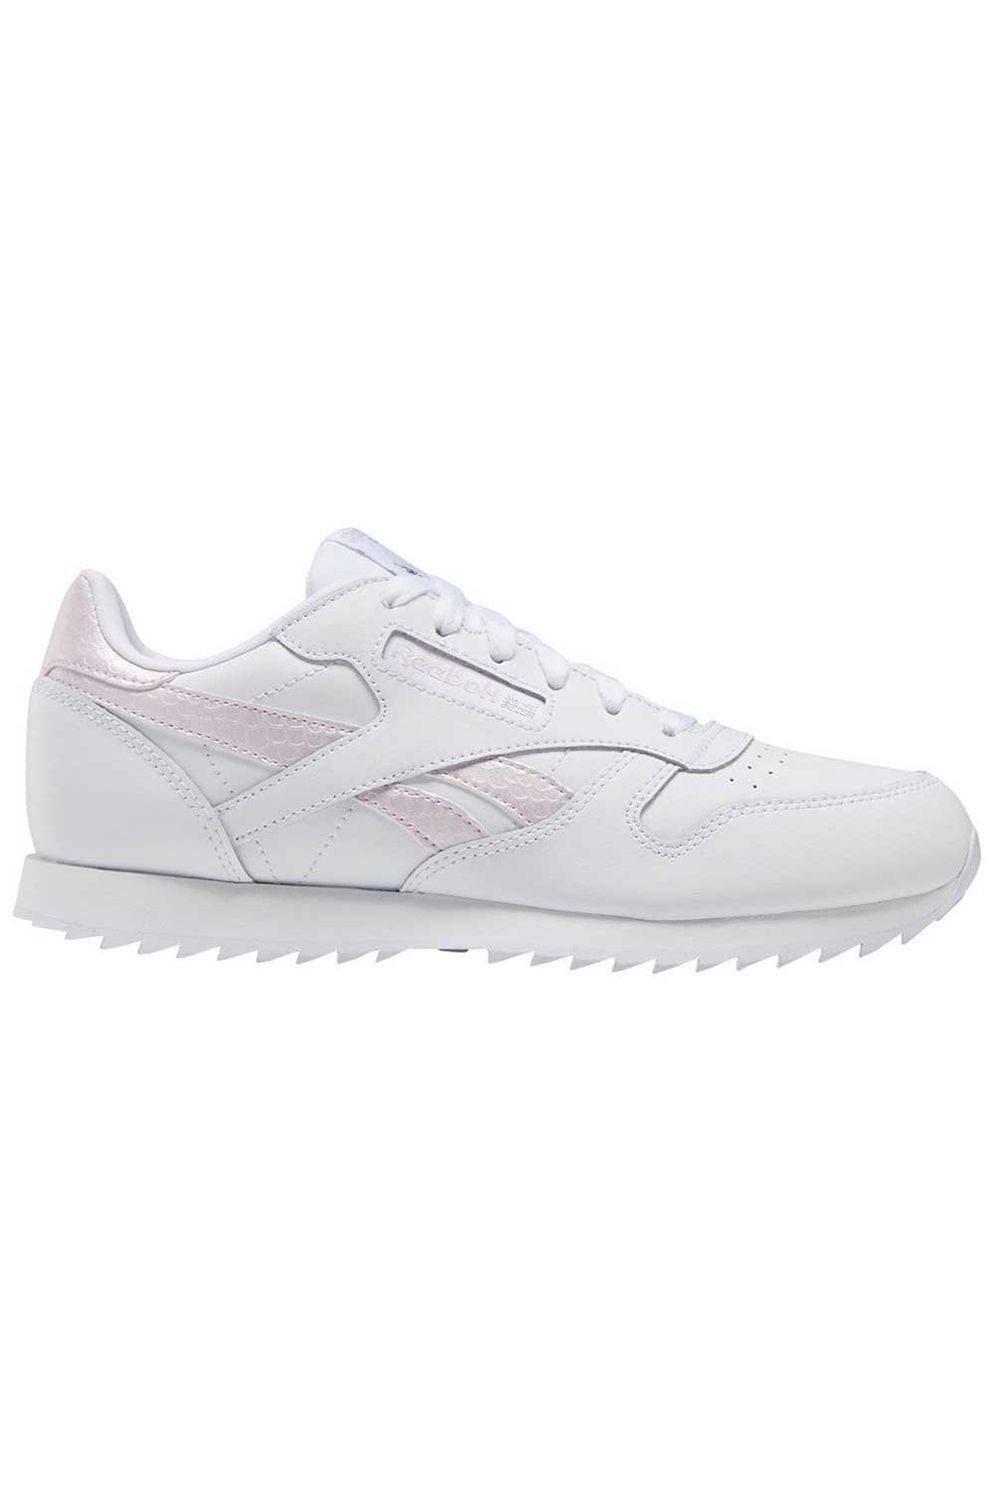 Tenis Reebok CLASSIC LEATHER White/Pixel Pink/None